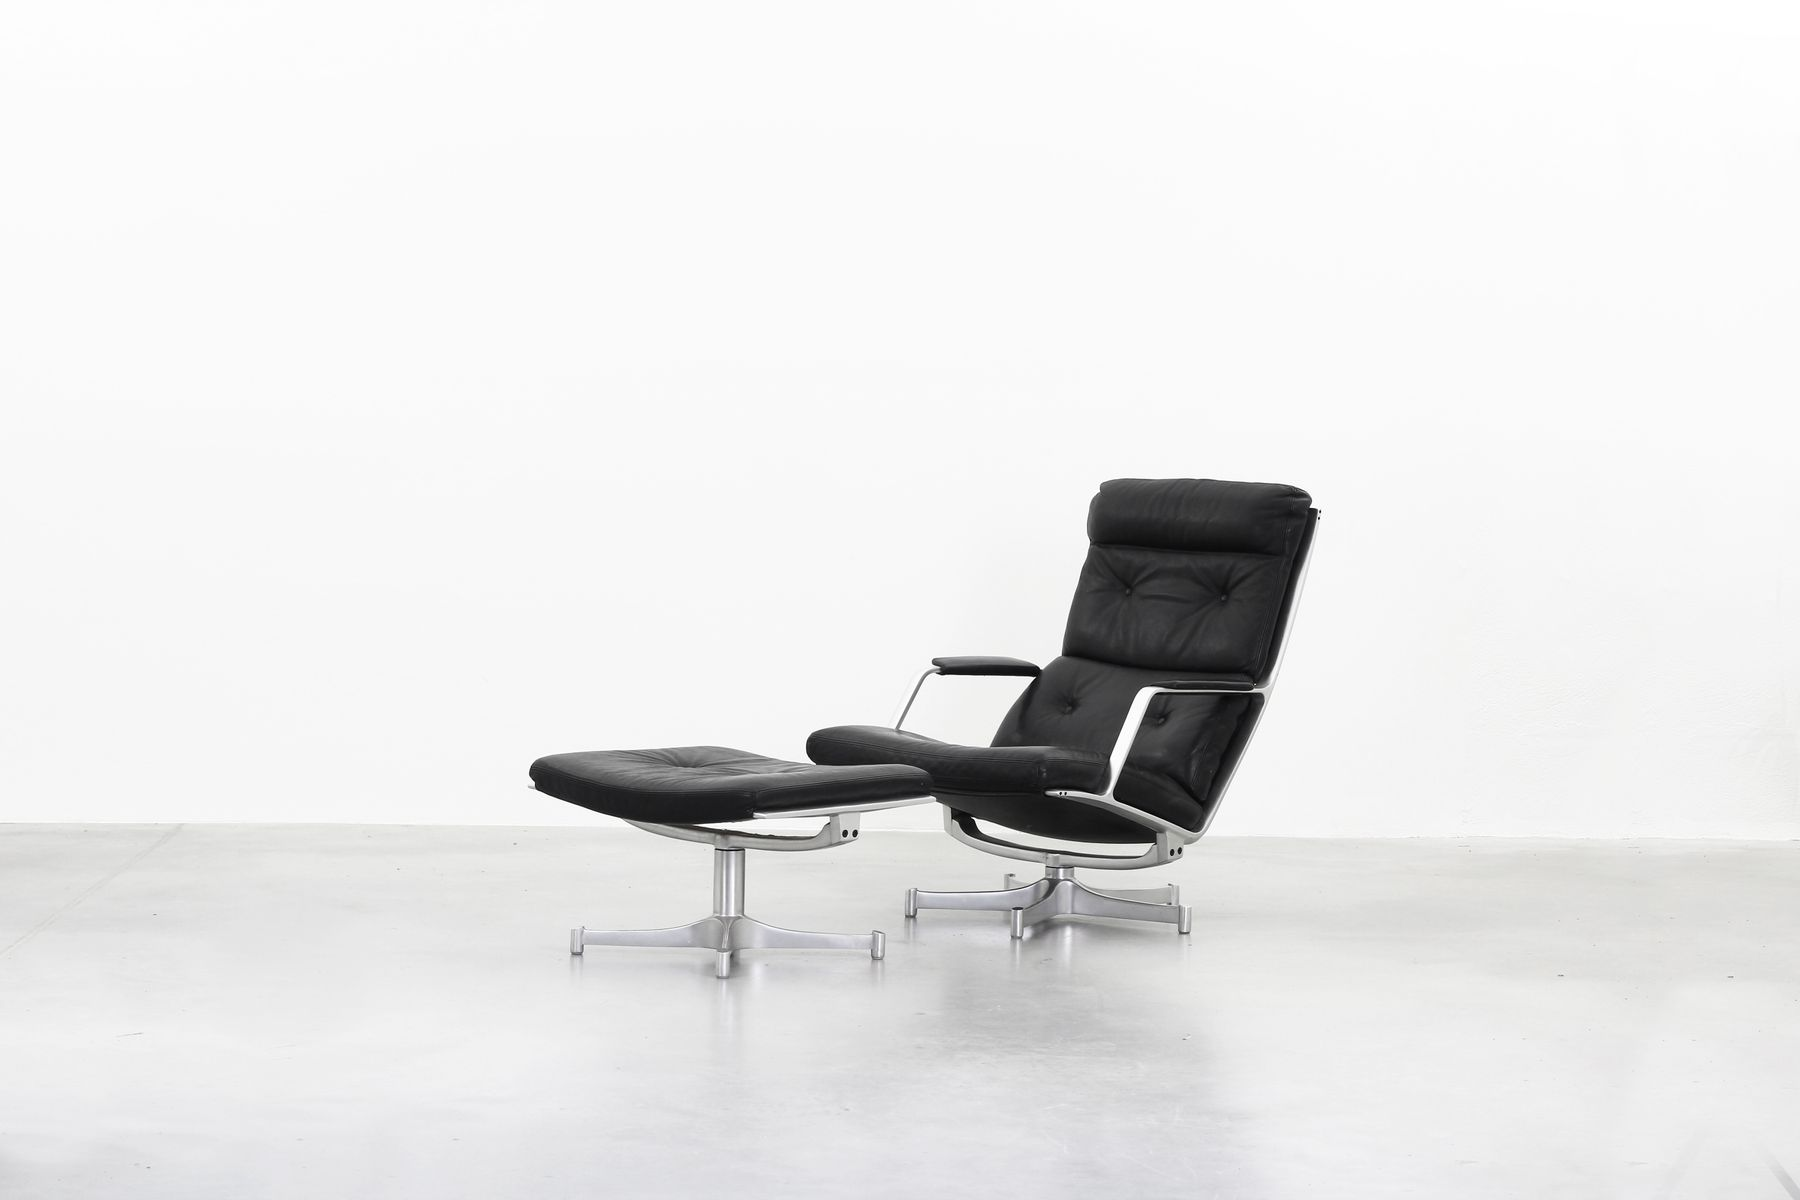 FK85 Lounge Chair & Ottoman Set by Fabricius & Kastholm for Kill